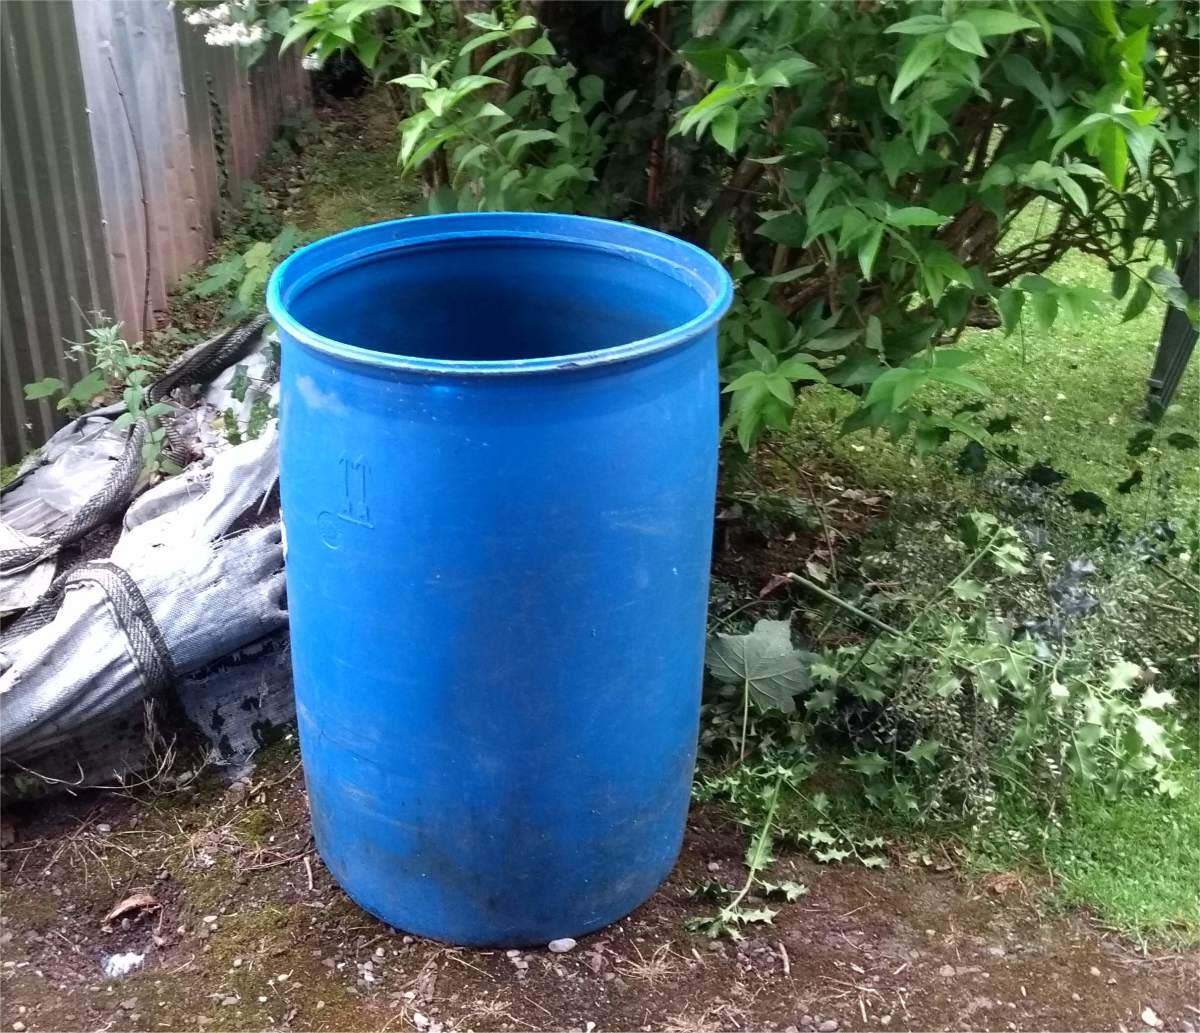 A barrel is more convenient than a hose because buckets can be filled quicker.